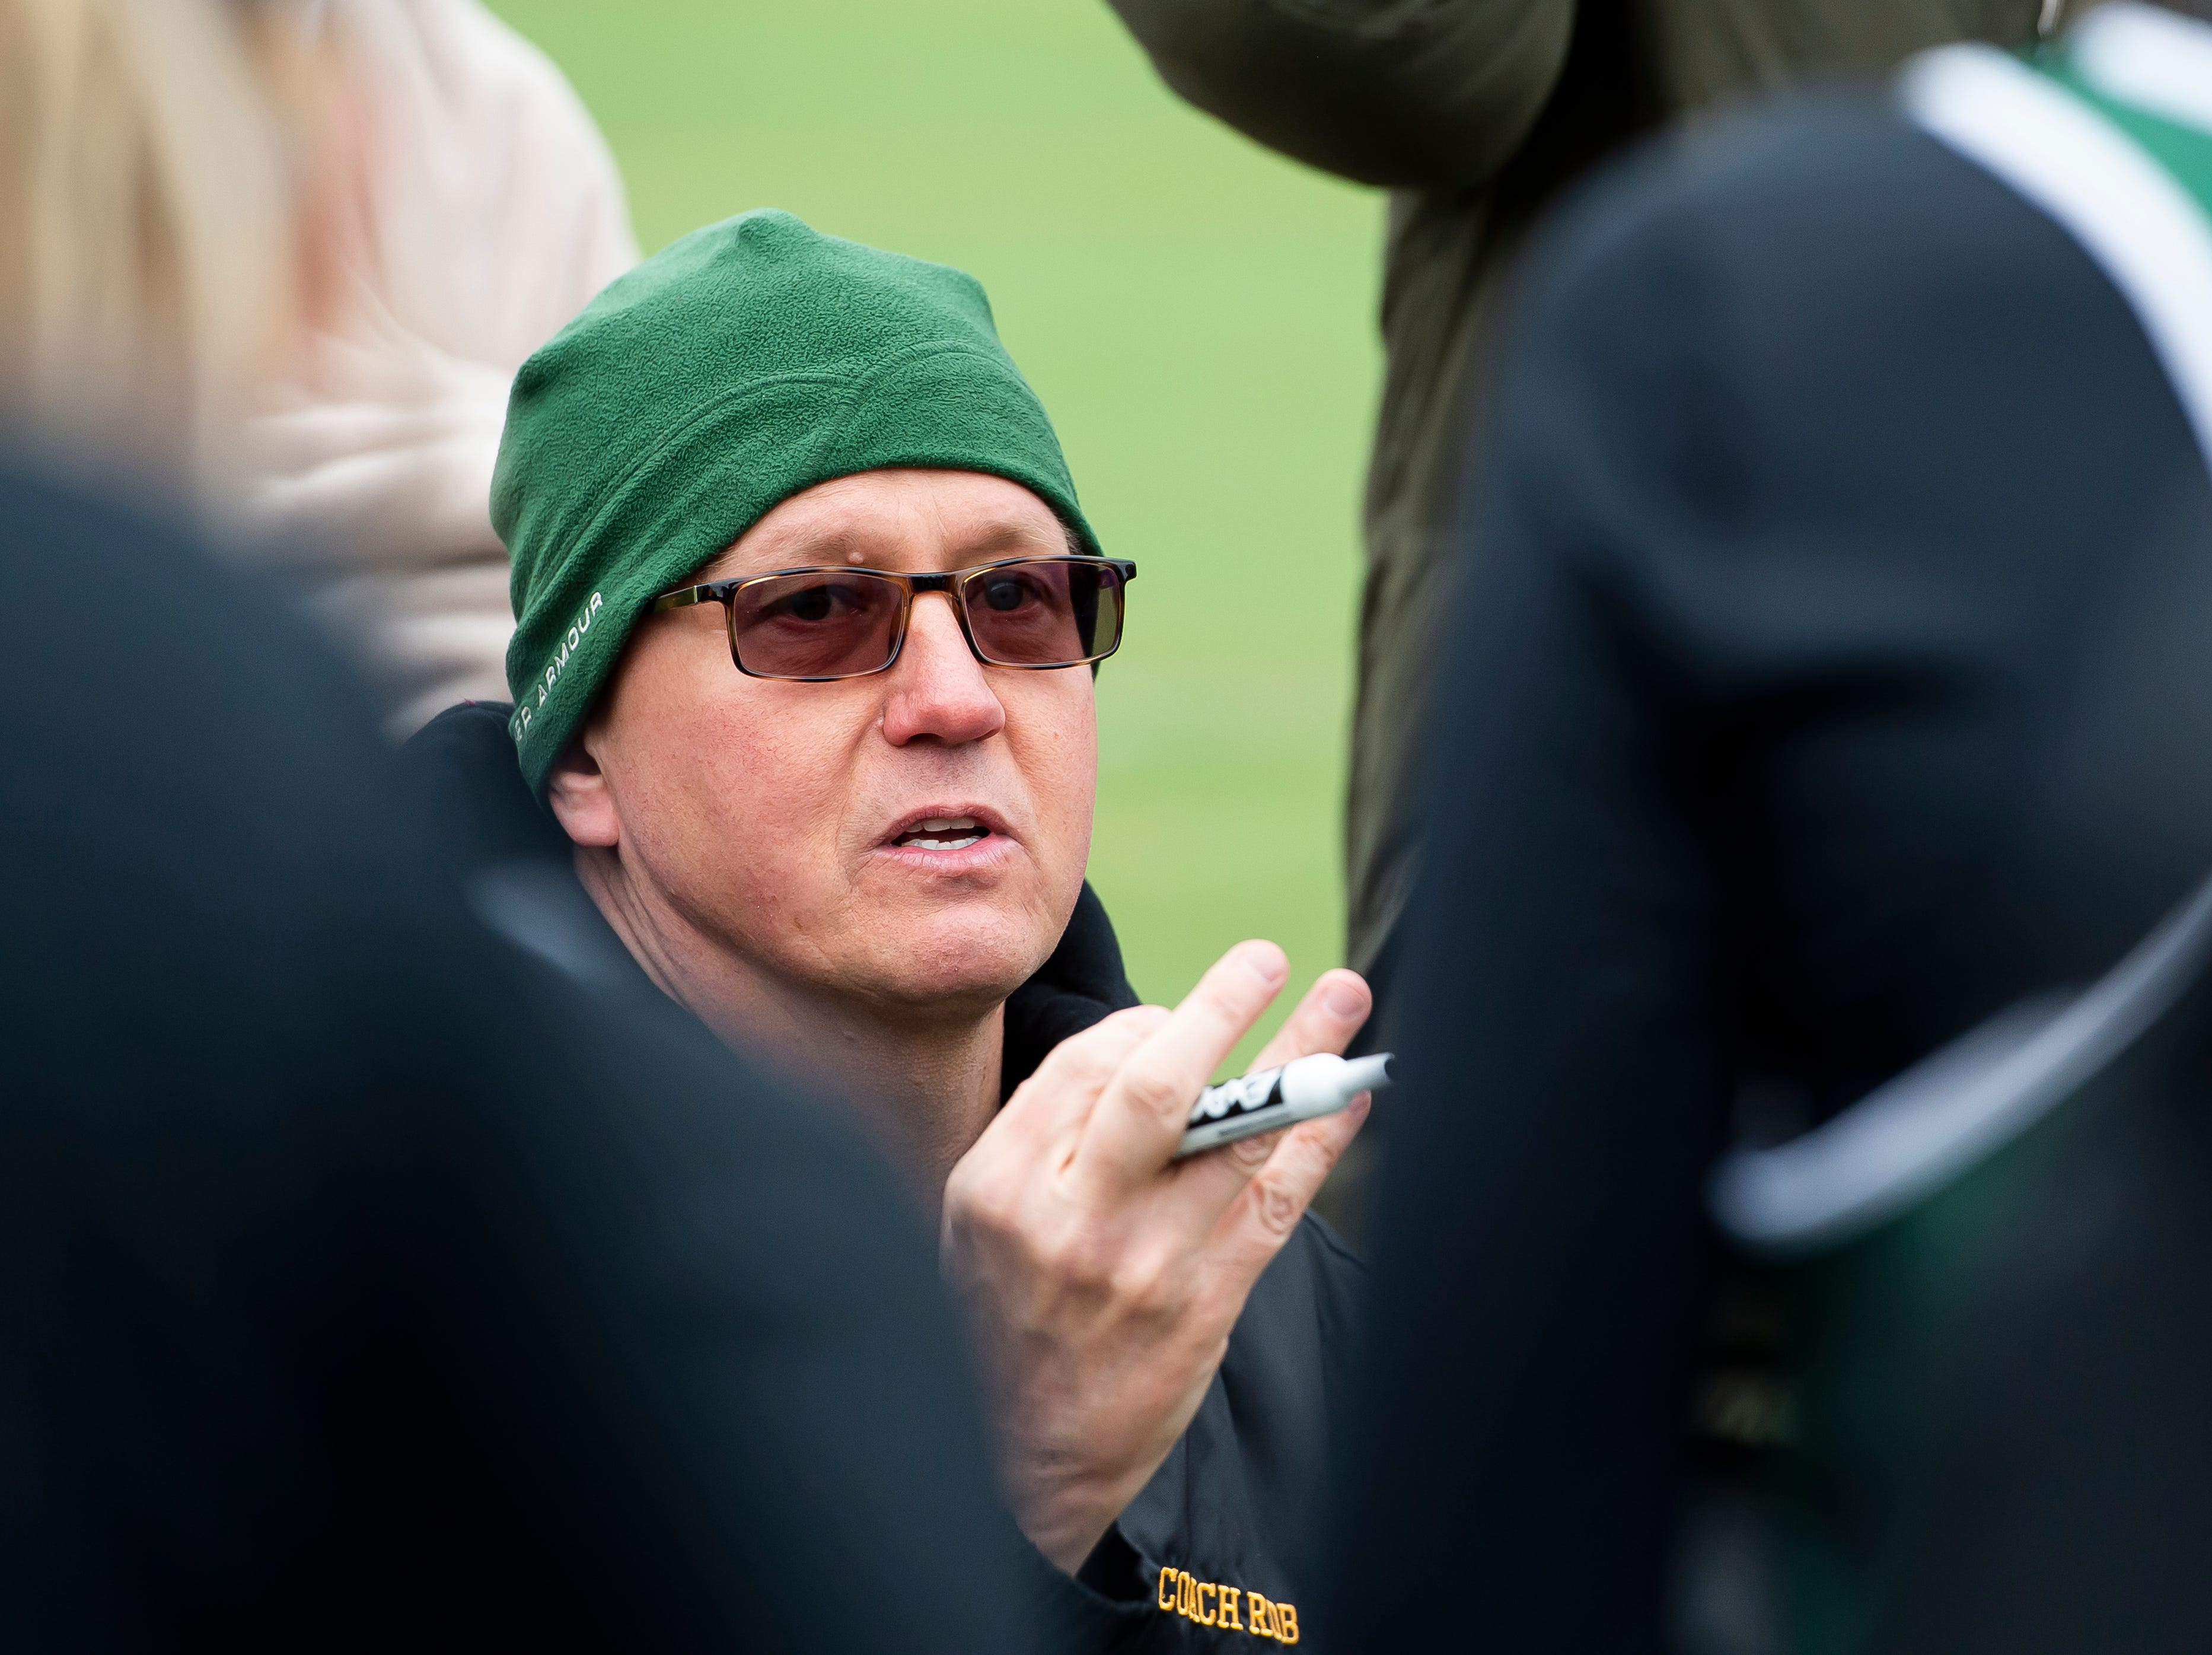 York Catholic girls lacrosse head coach Rob Linthicum talks with his team during halftime in a YAIAA lacrosse game against South Western on Tuesday, April 2, 2019. York Catholic won 19-7 and improved to 5-0.